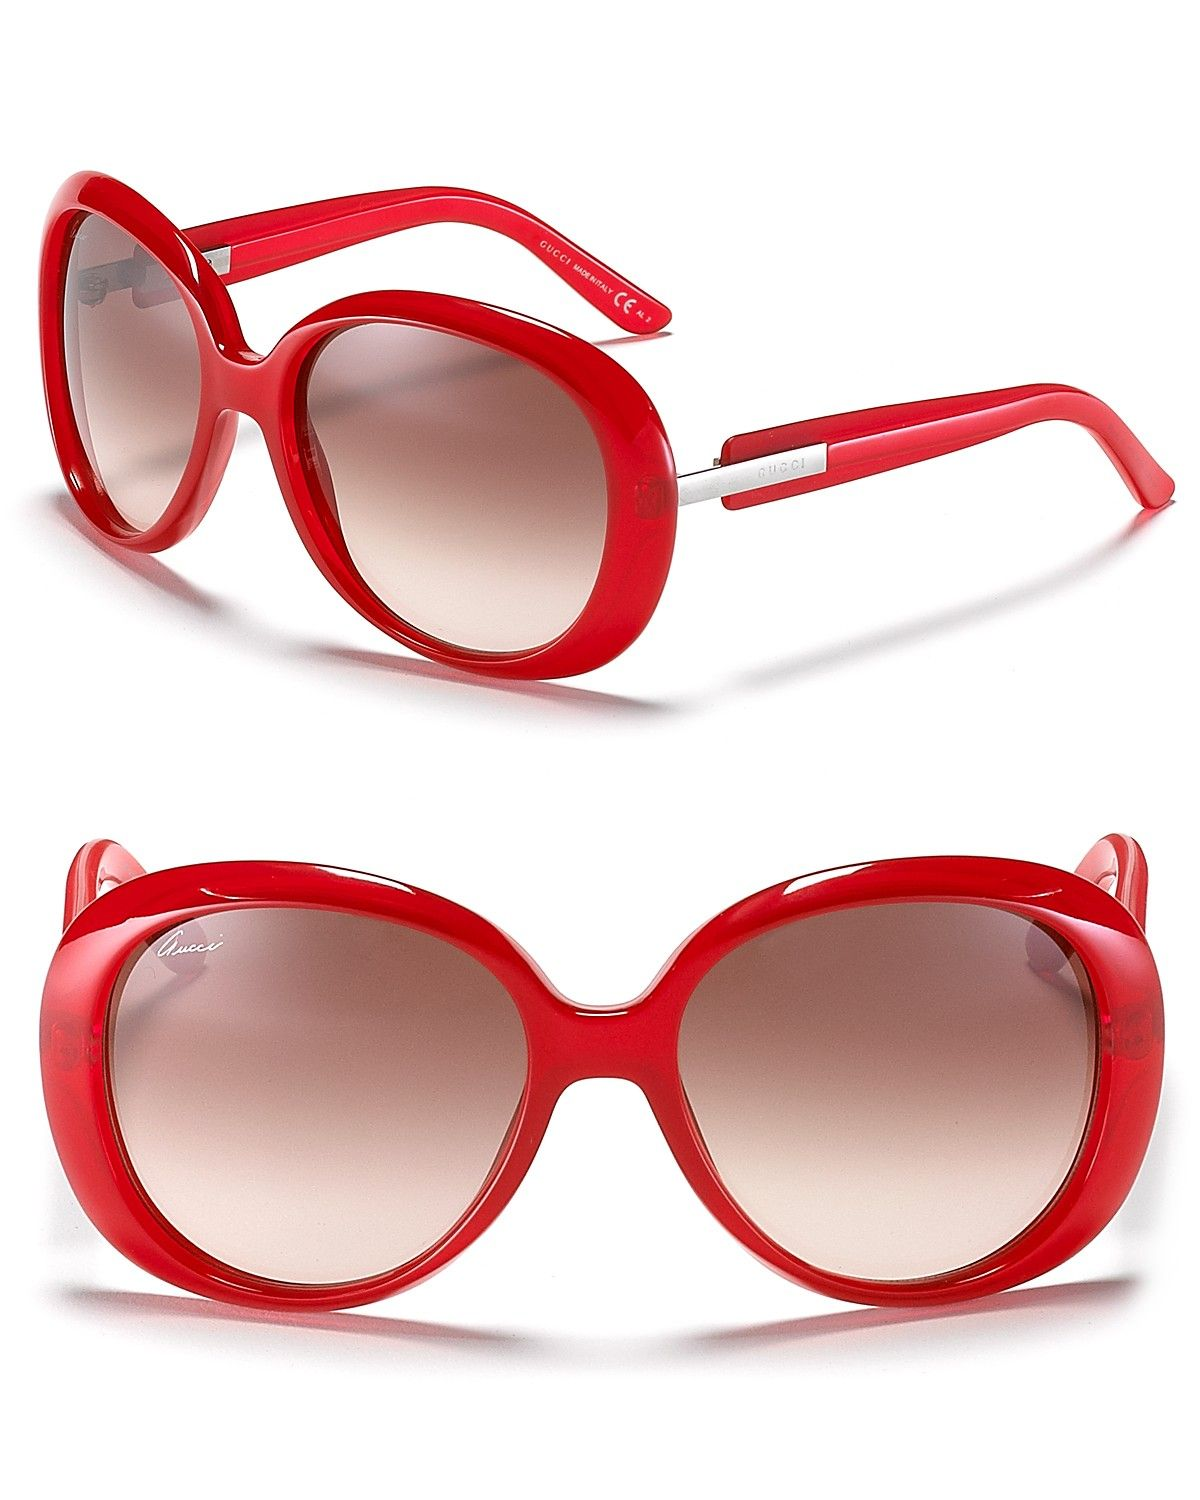 19aa61b73095 GUCCI Red Rounded Oversized Sunglasses ✺ꂢႷ ძꏁƧ➃Ḋã̰Ⴤʂ✺